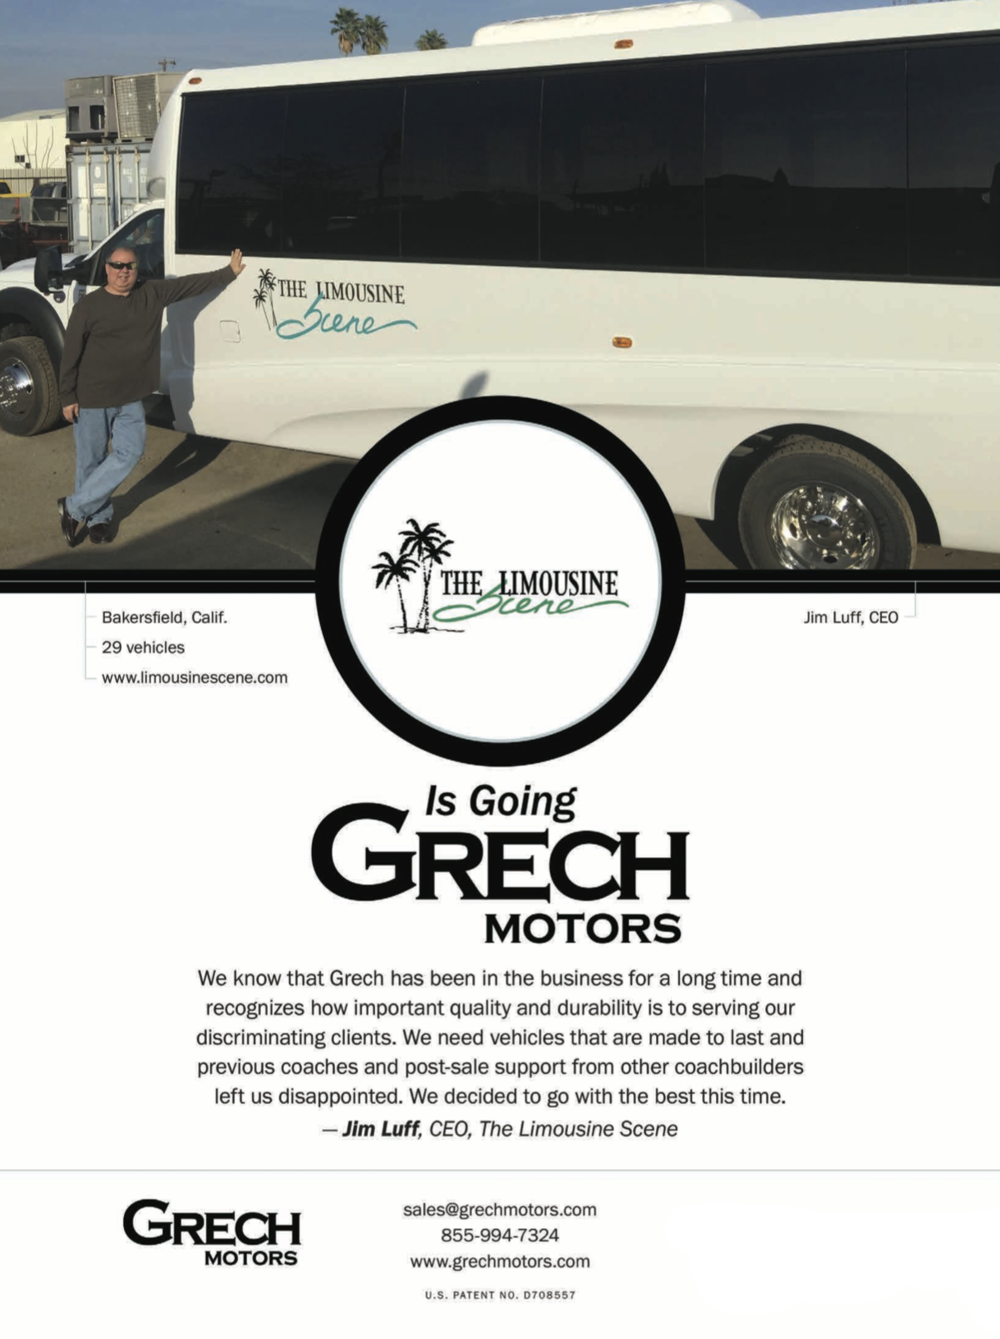 CD0315-NEW-grech-going-limousine-scene-fp WEBSITE.png